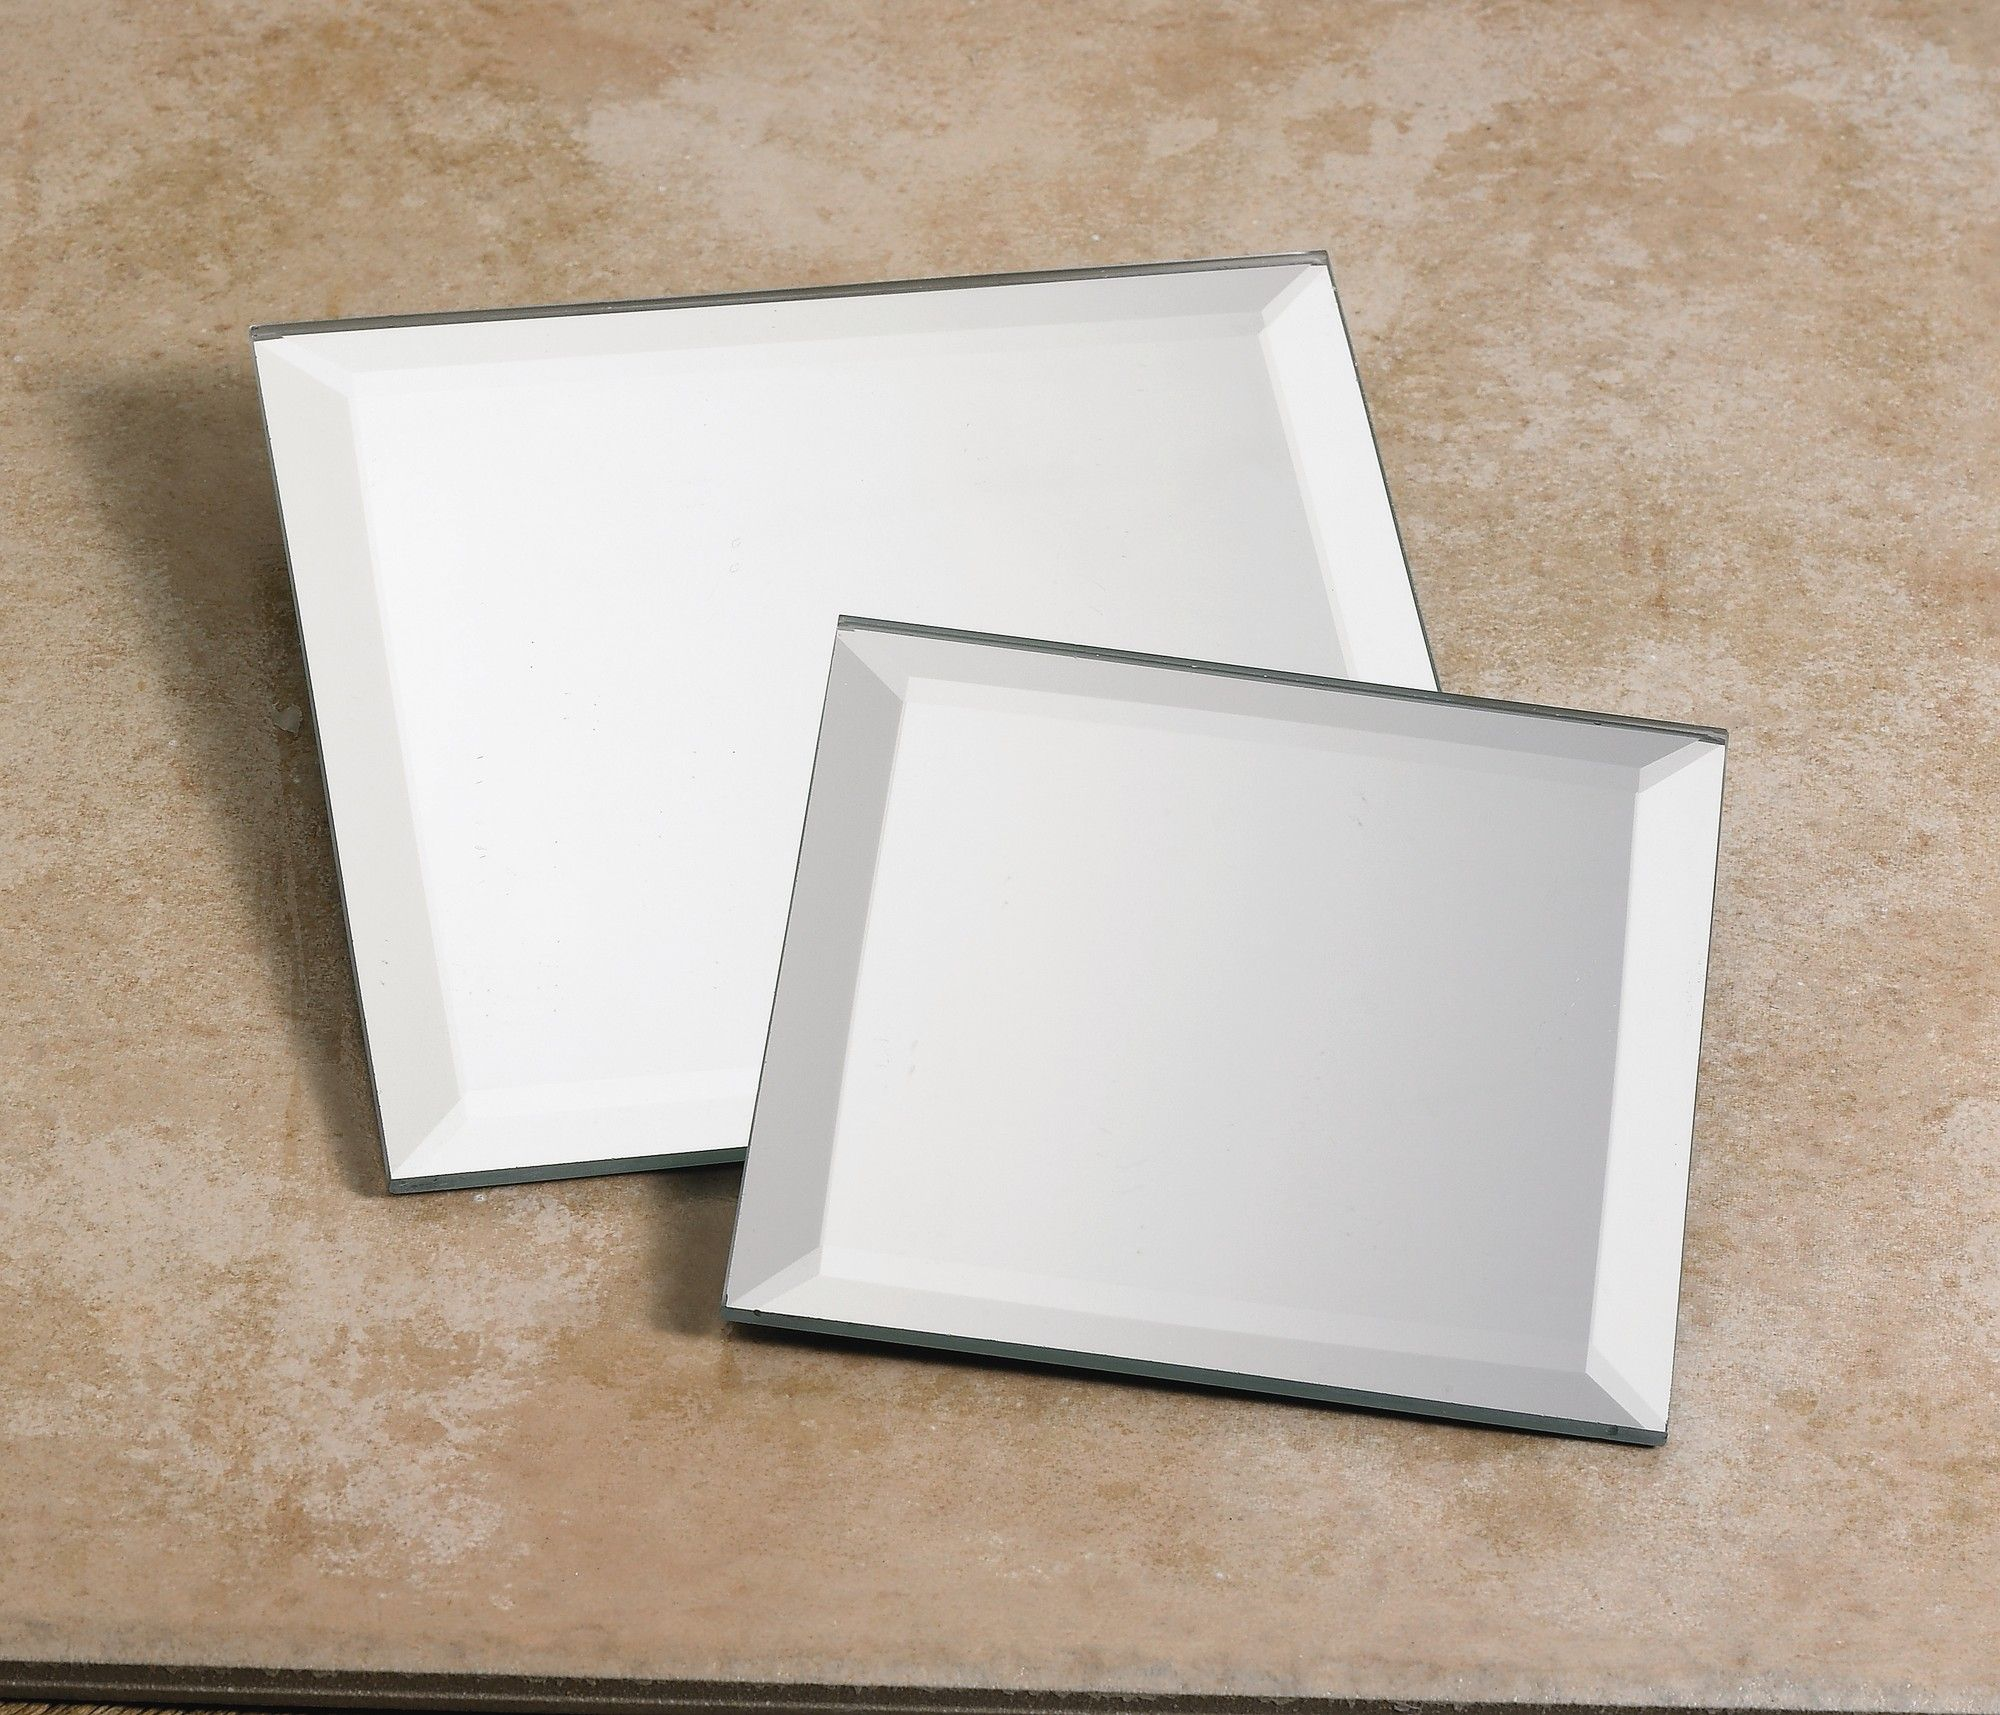 Square Mirror Plate & Square Mirror Plate | Mirror plates Squares and Products